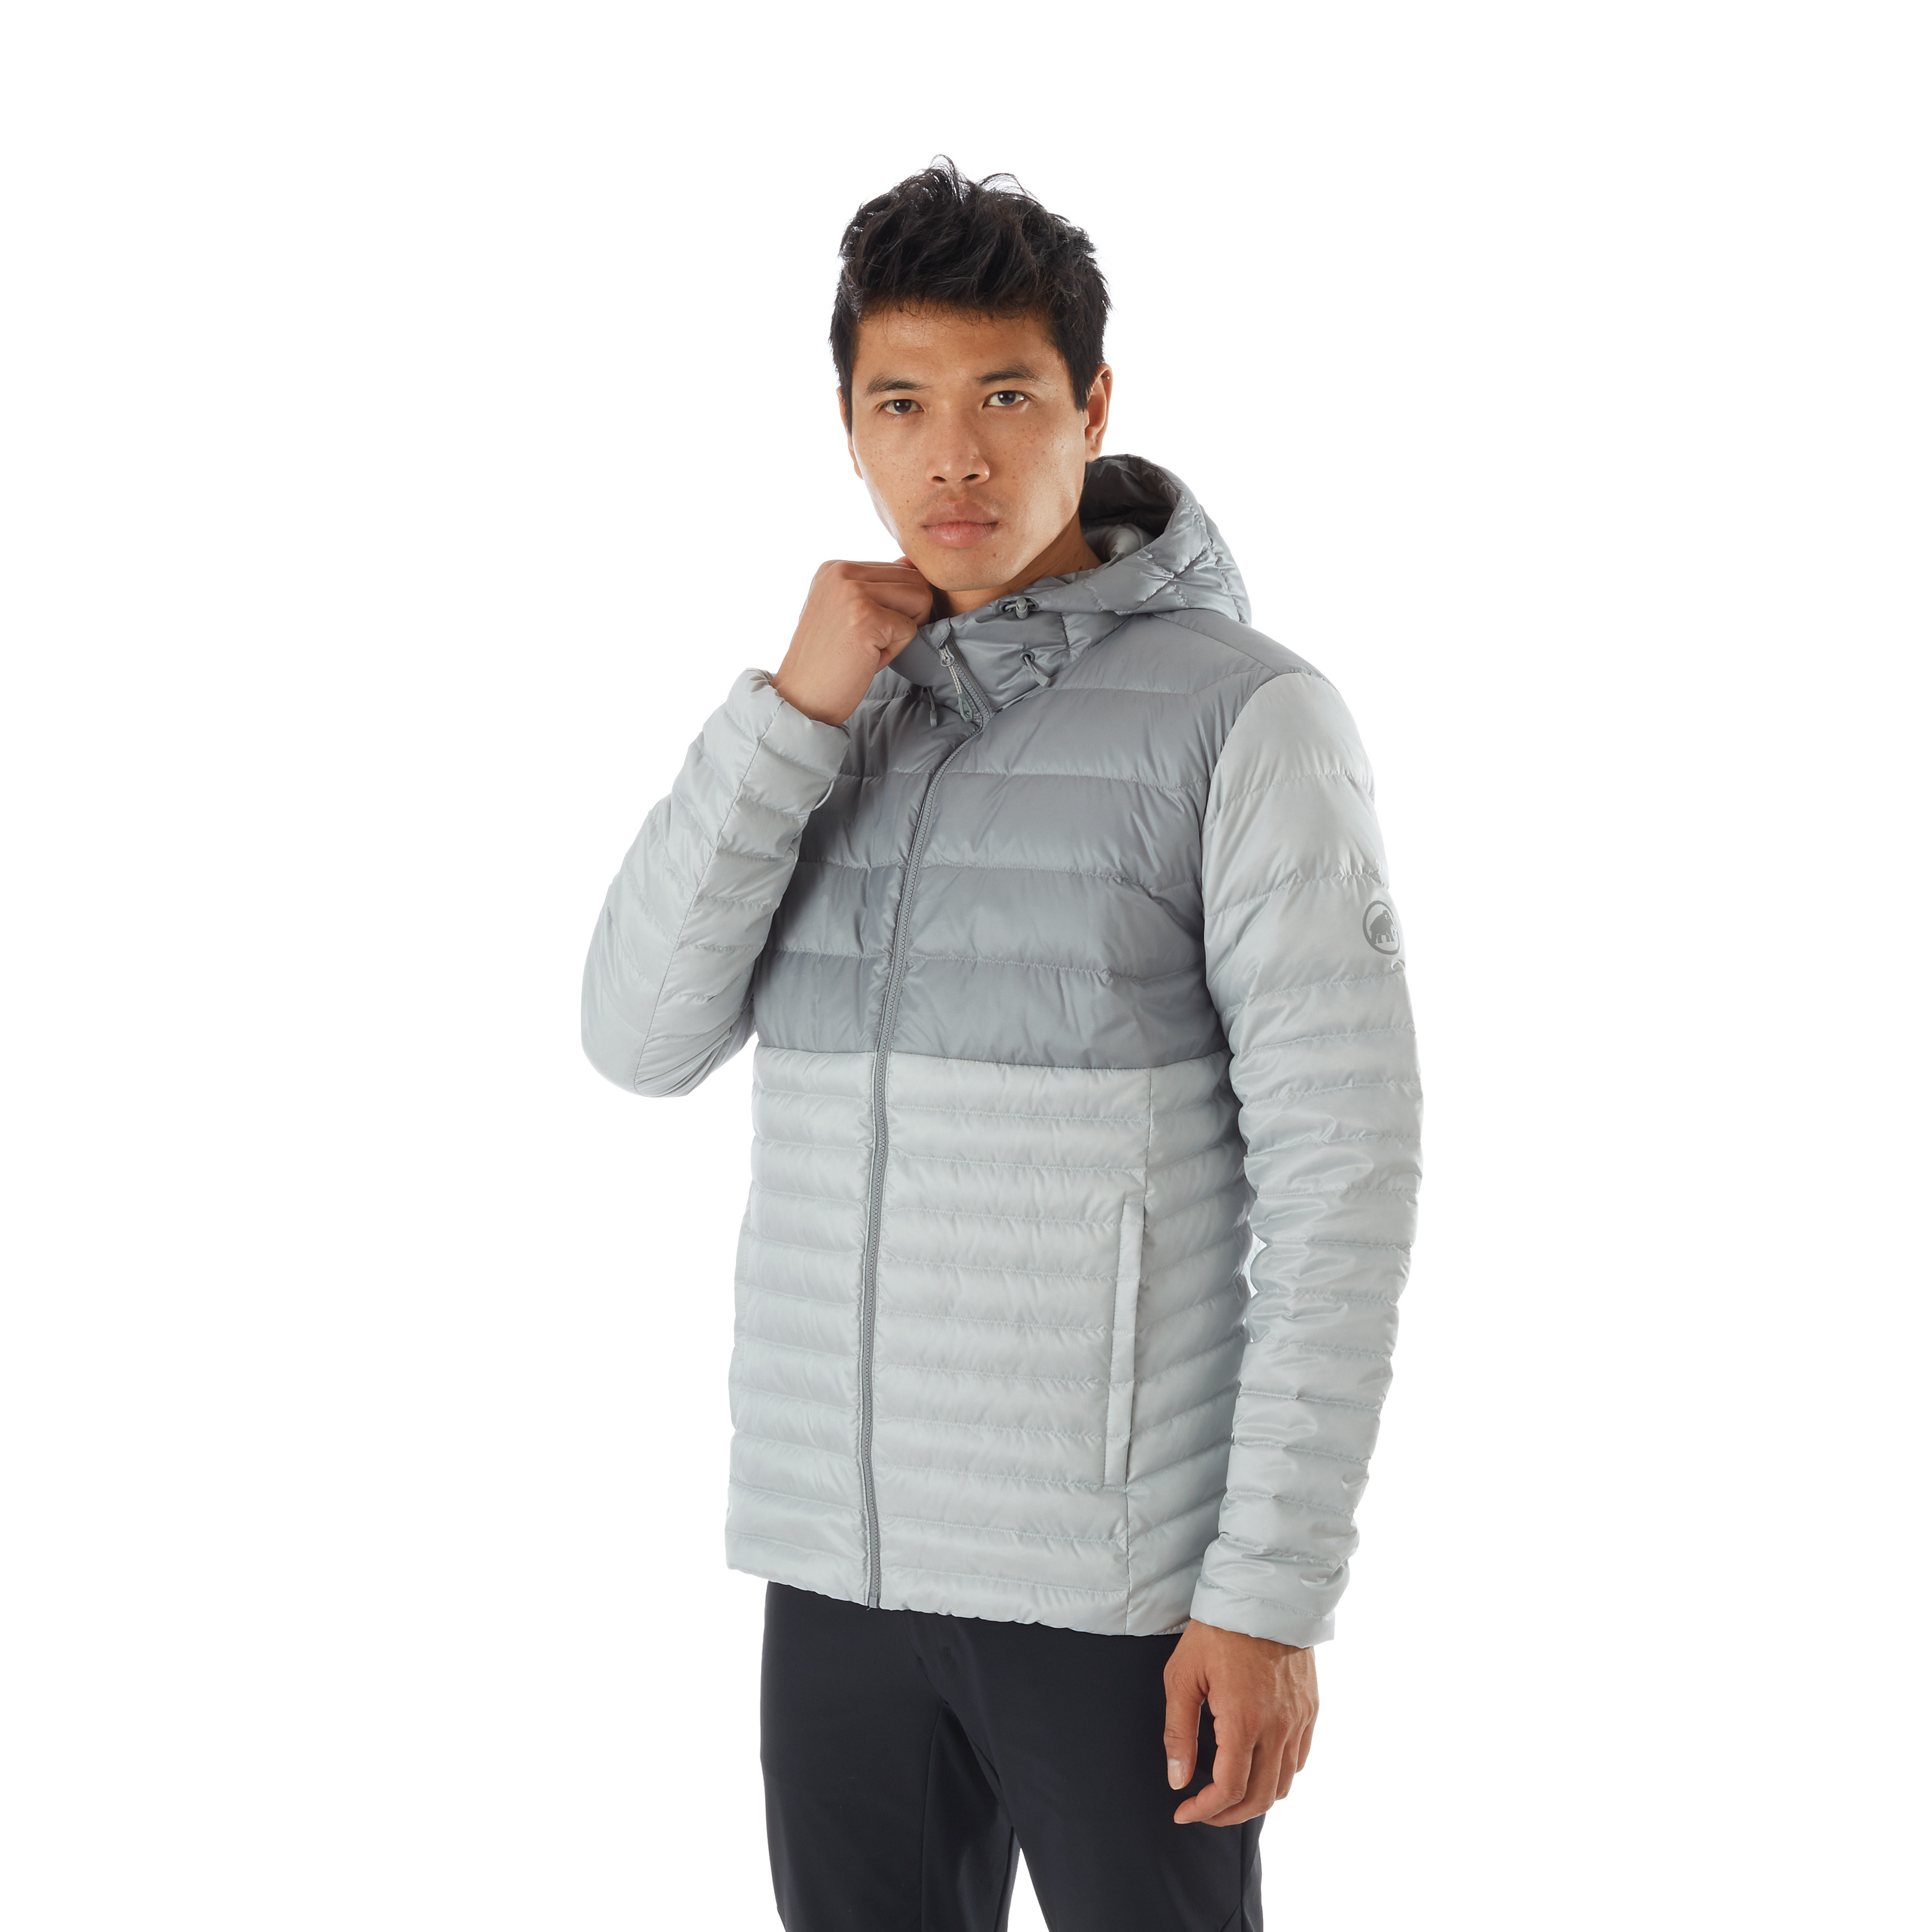 Convey IN Hooded Jacket Men product image